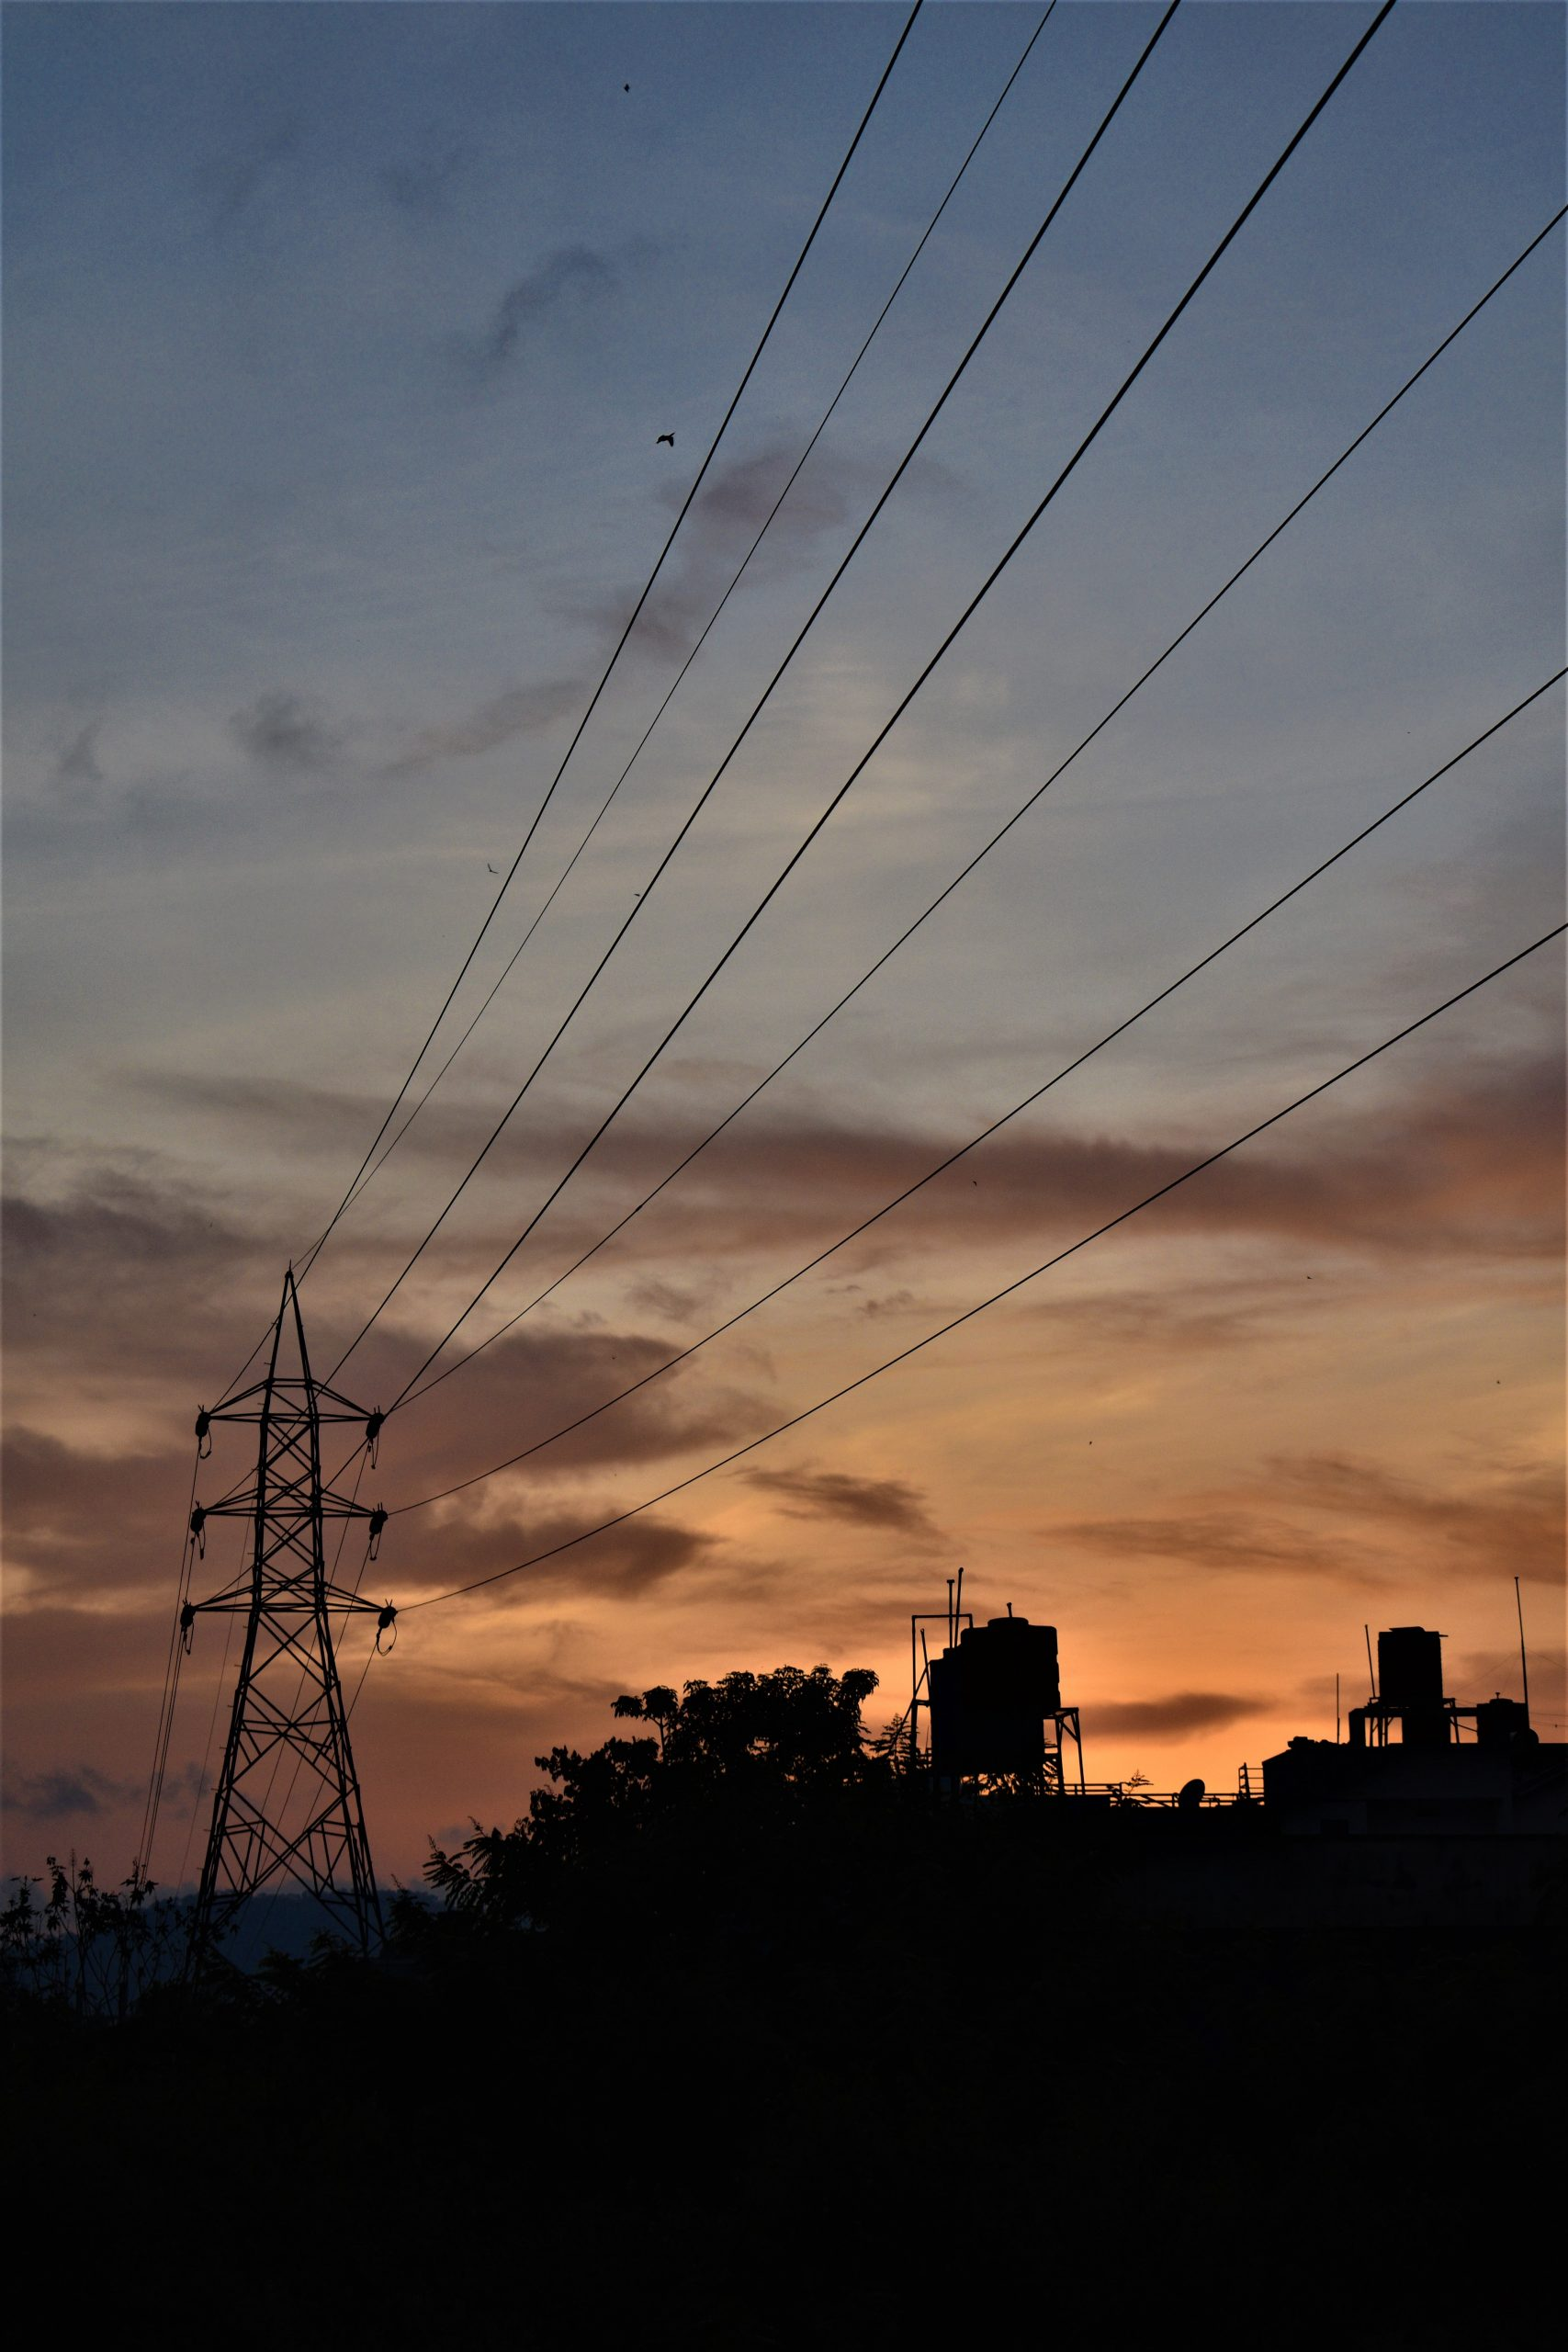 Sunset sky with silhouette of power tower